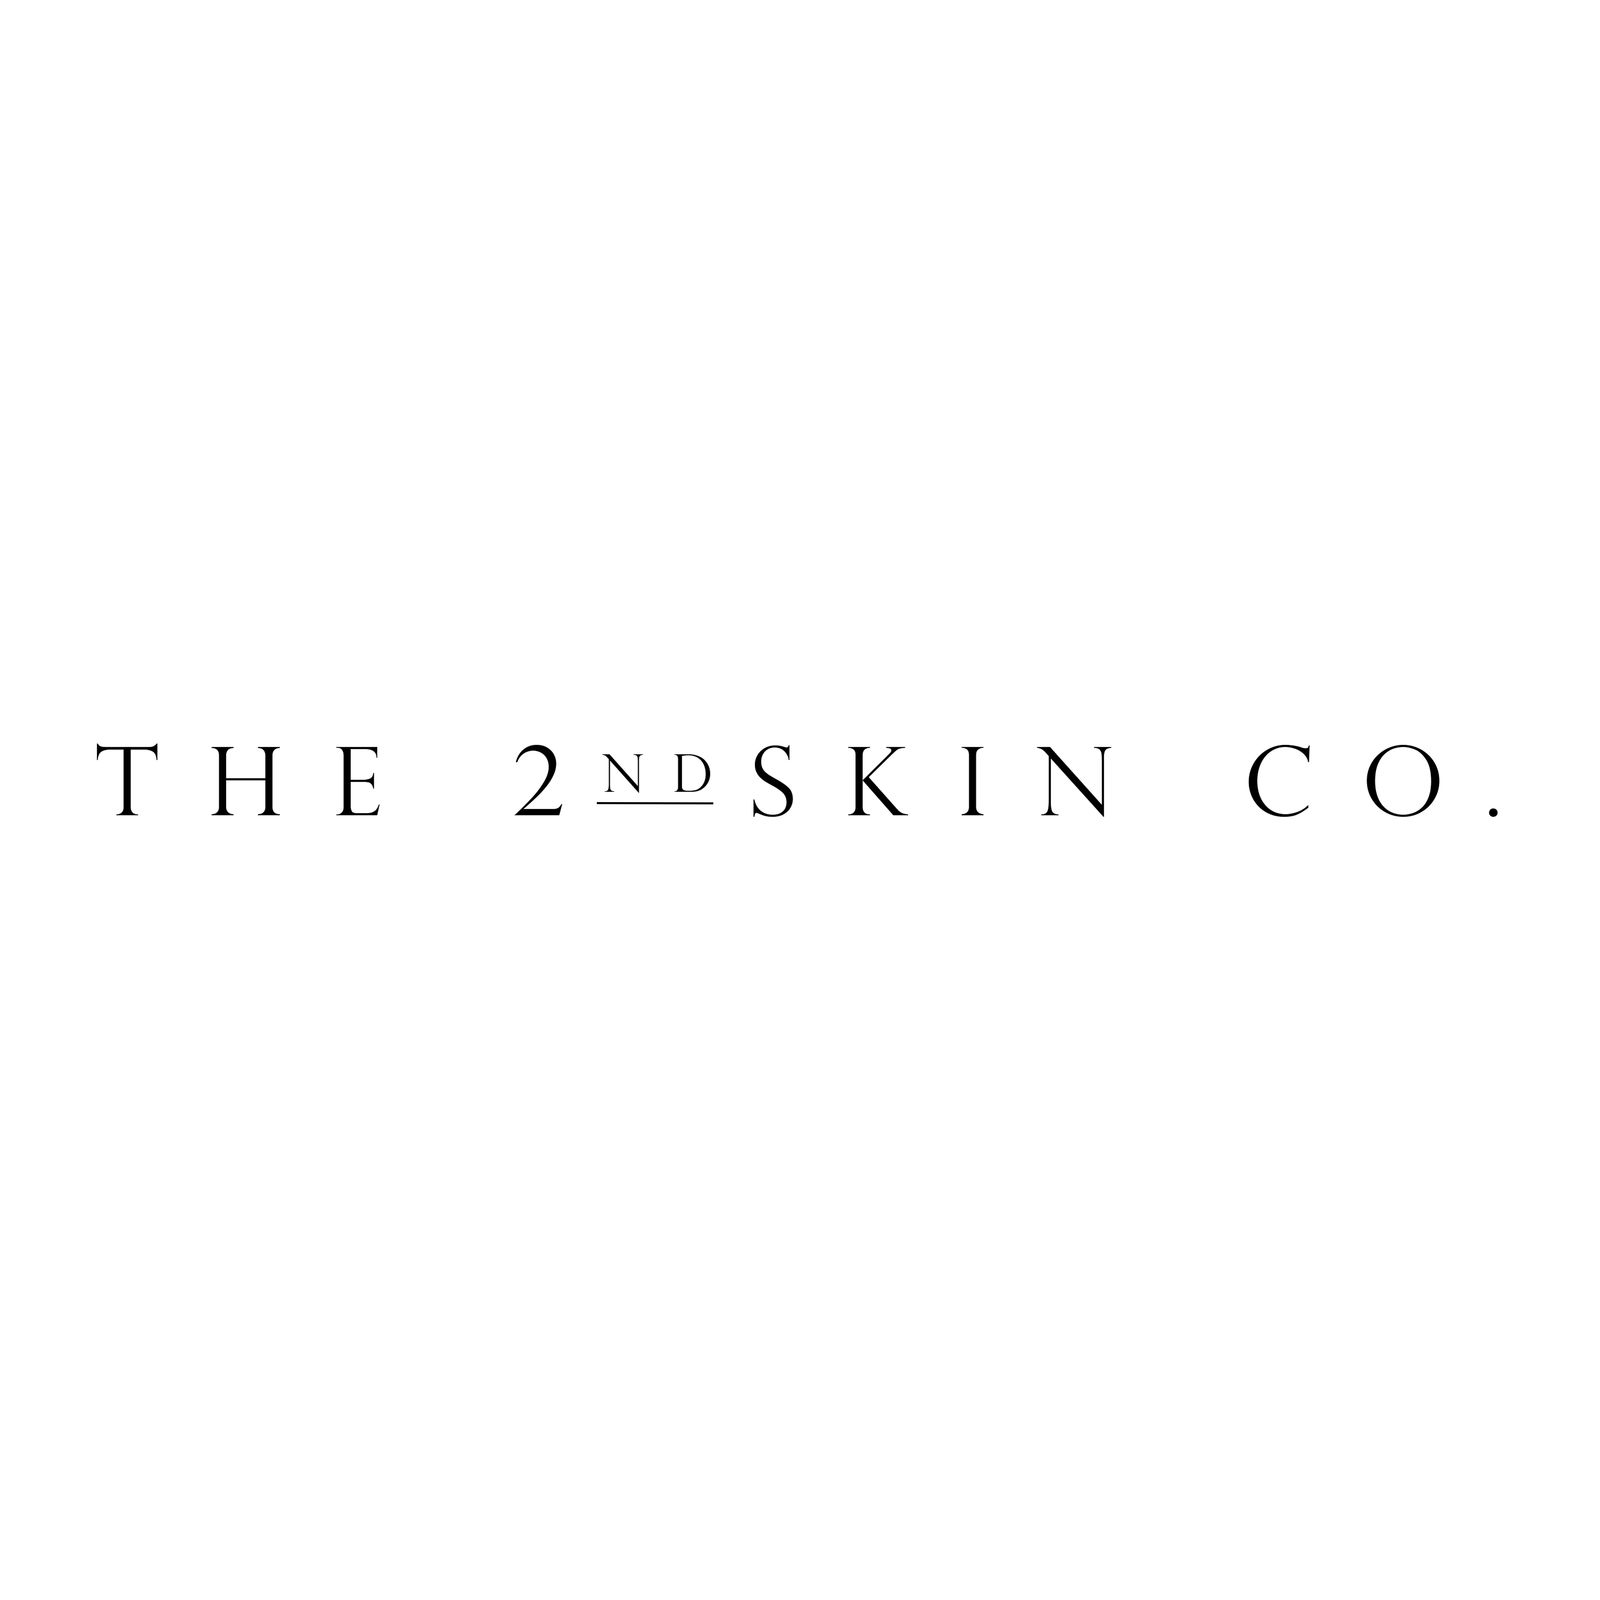 THE 2nd SKIN CO.